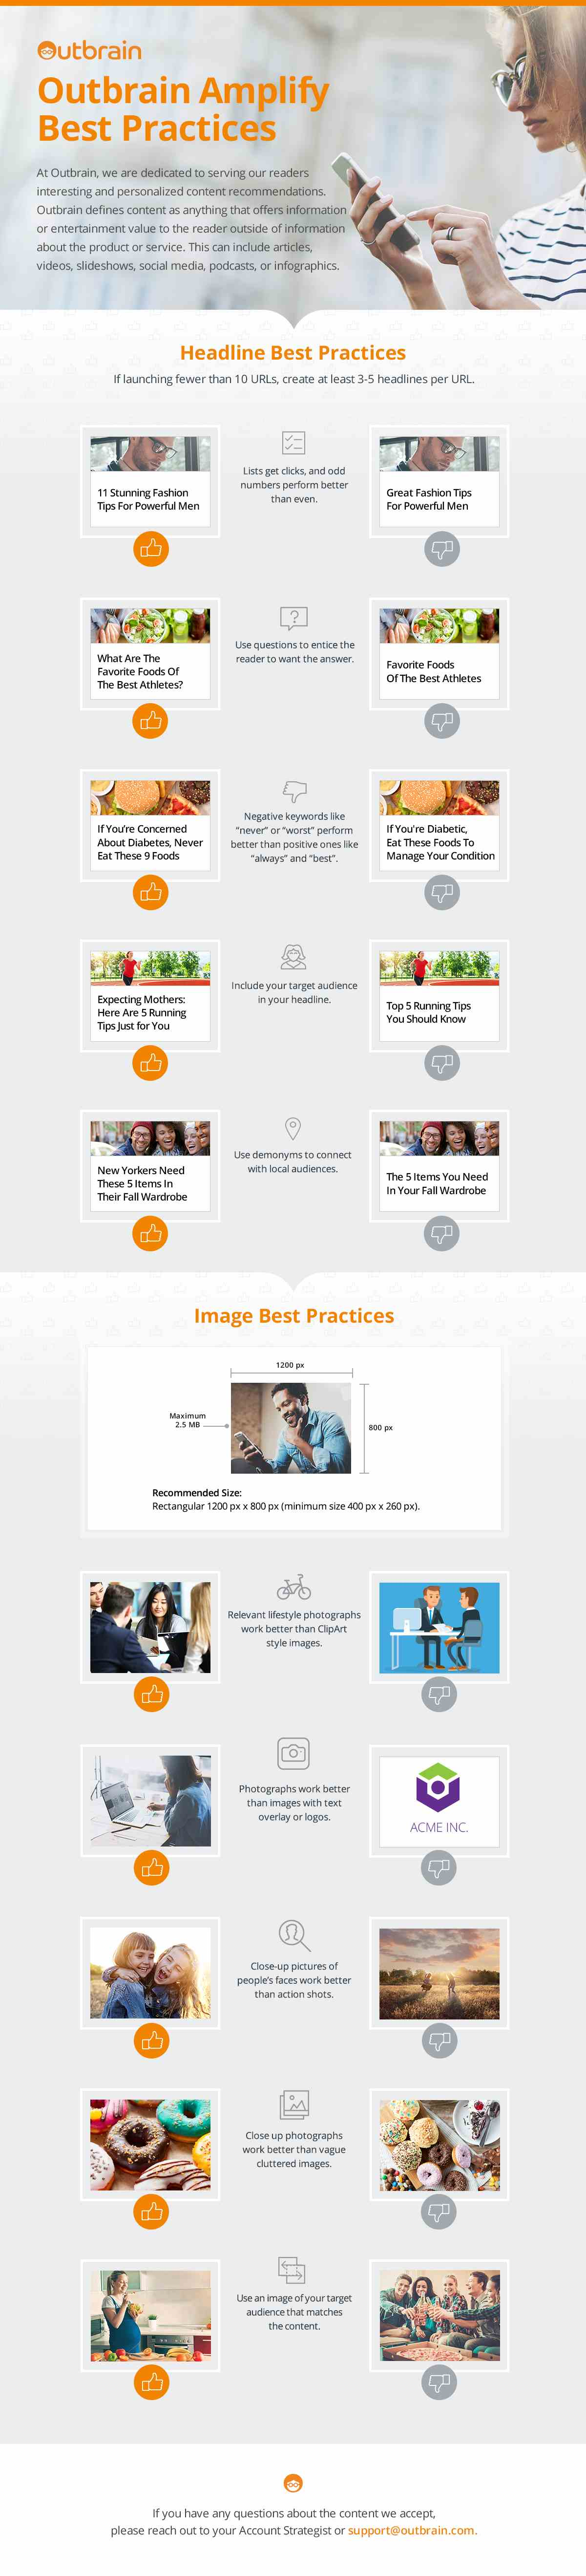 Infographic-Amplify-Best-Practices